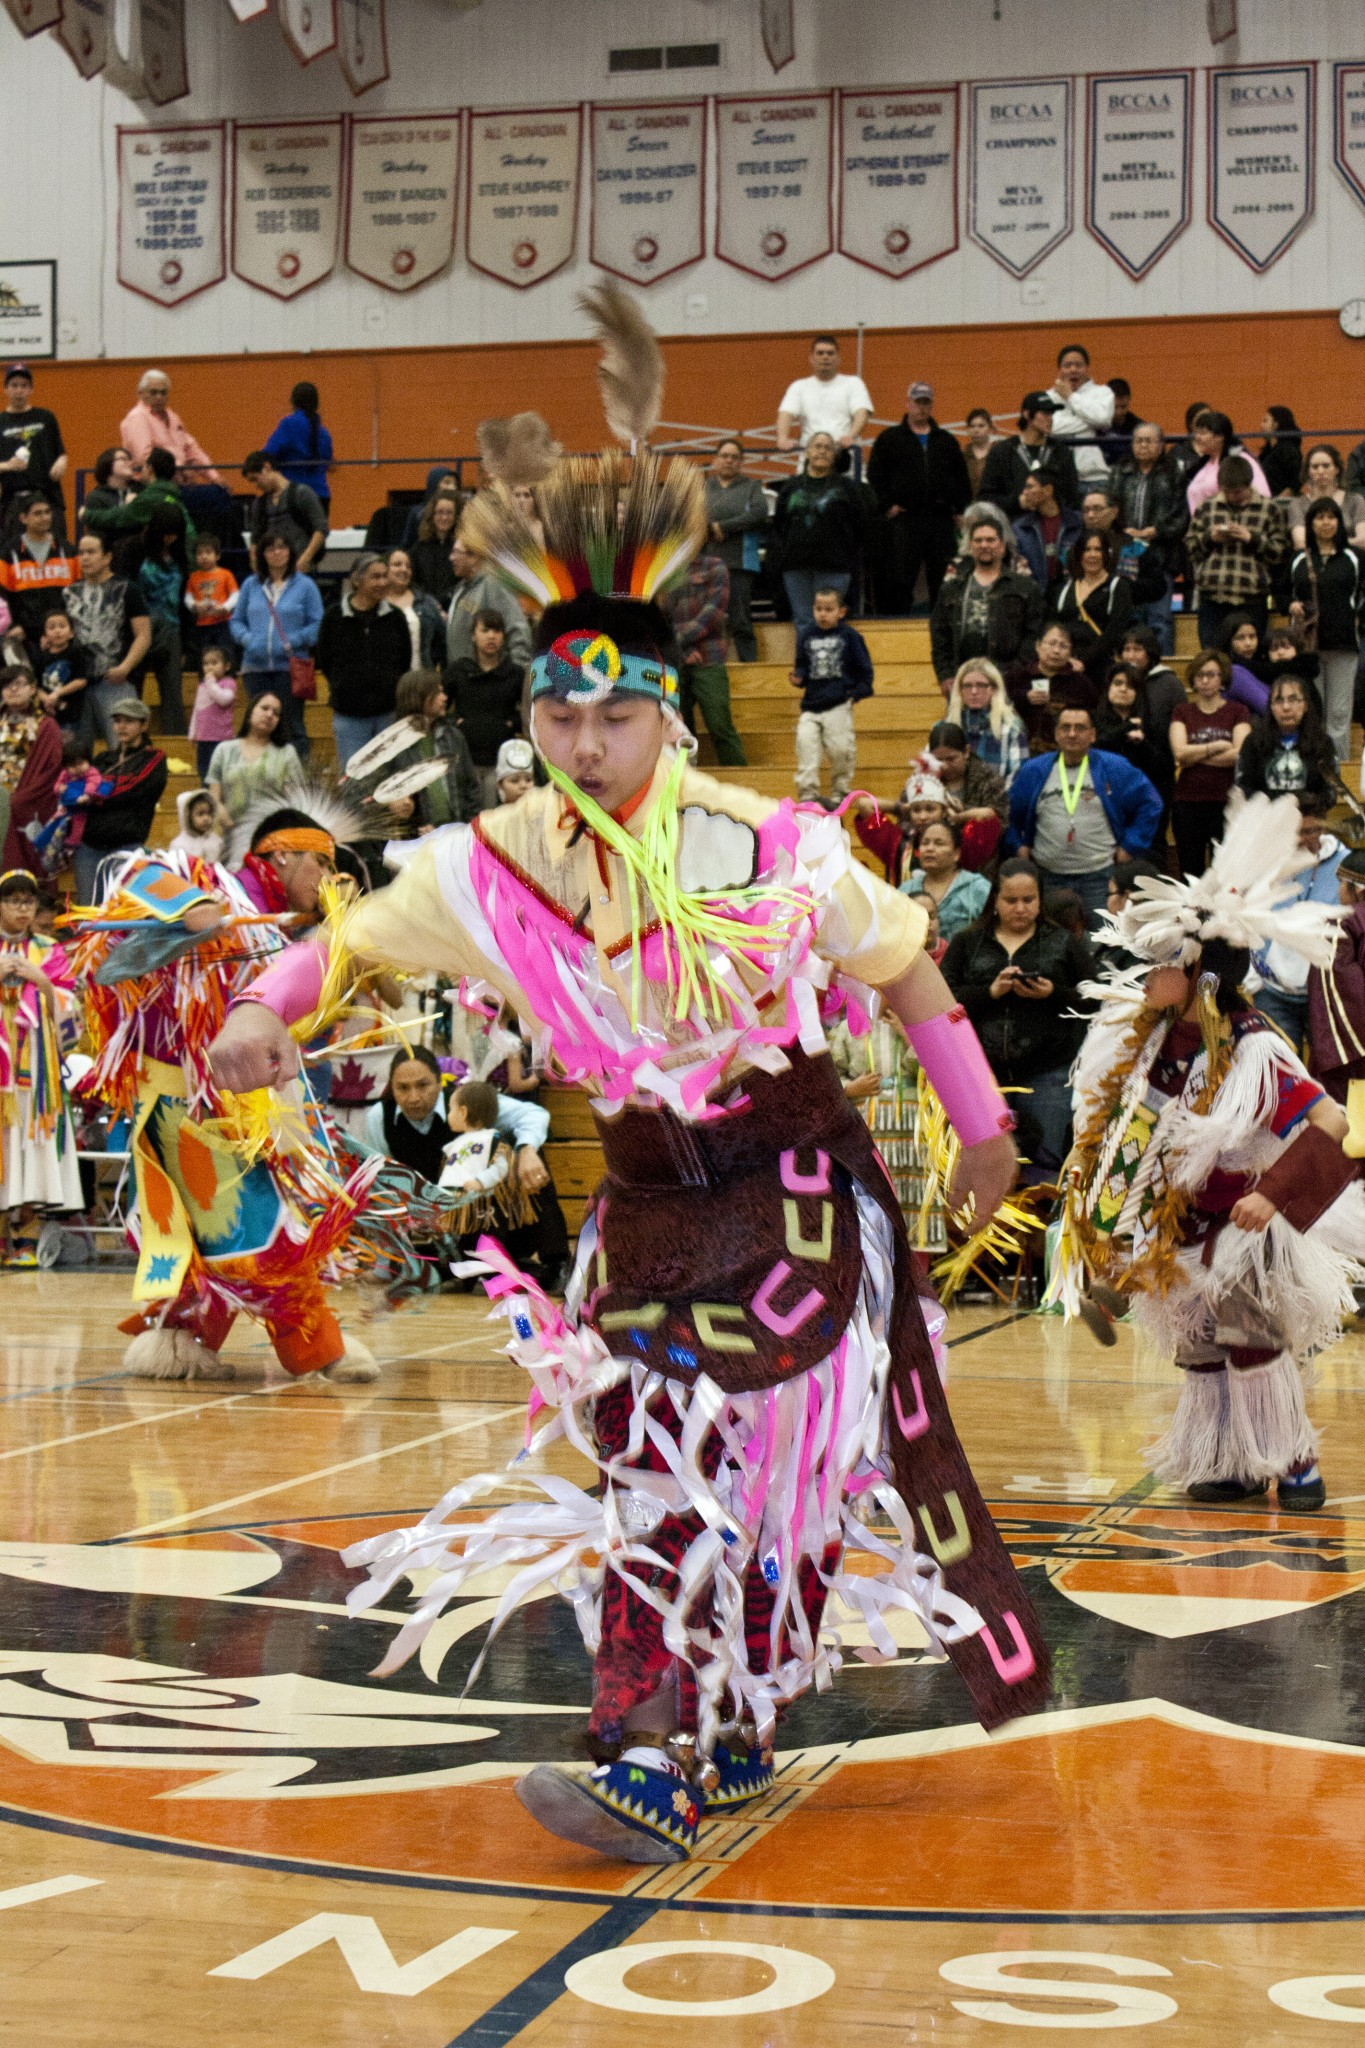 Atlan Anthony dances at the TRU traditional powwow. - PHOTO BY SEAN BRADY